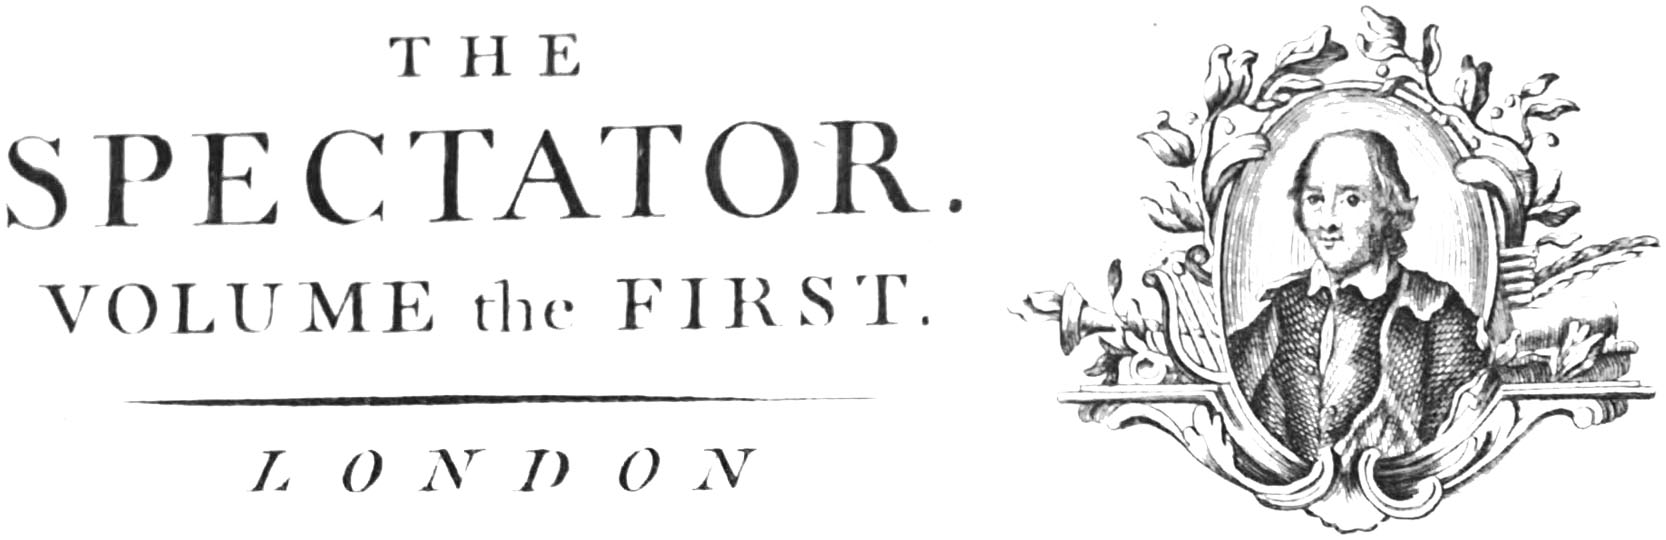 The Spectator was a short-lived London daily publication It was founded by Joseph Addison and Richard Steele and spanned the period, 1711 to 1712.